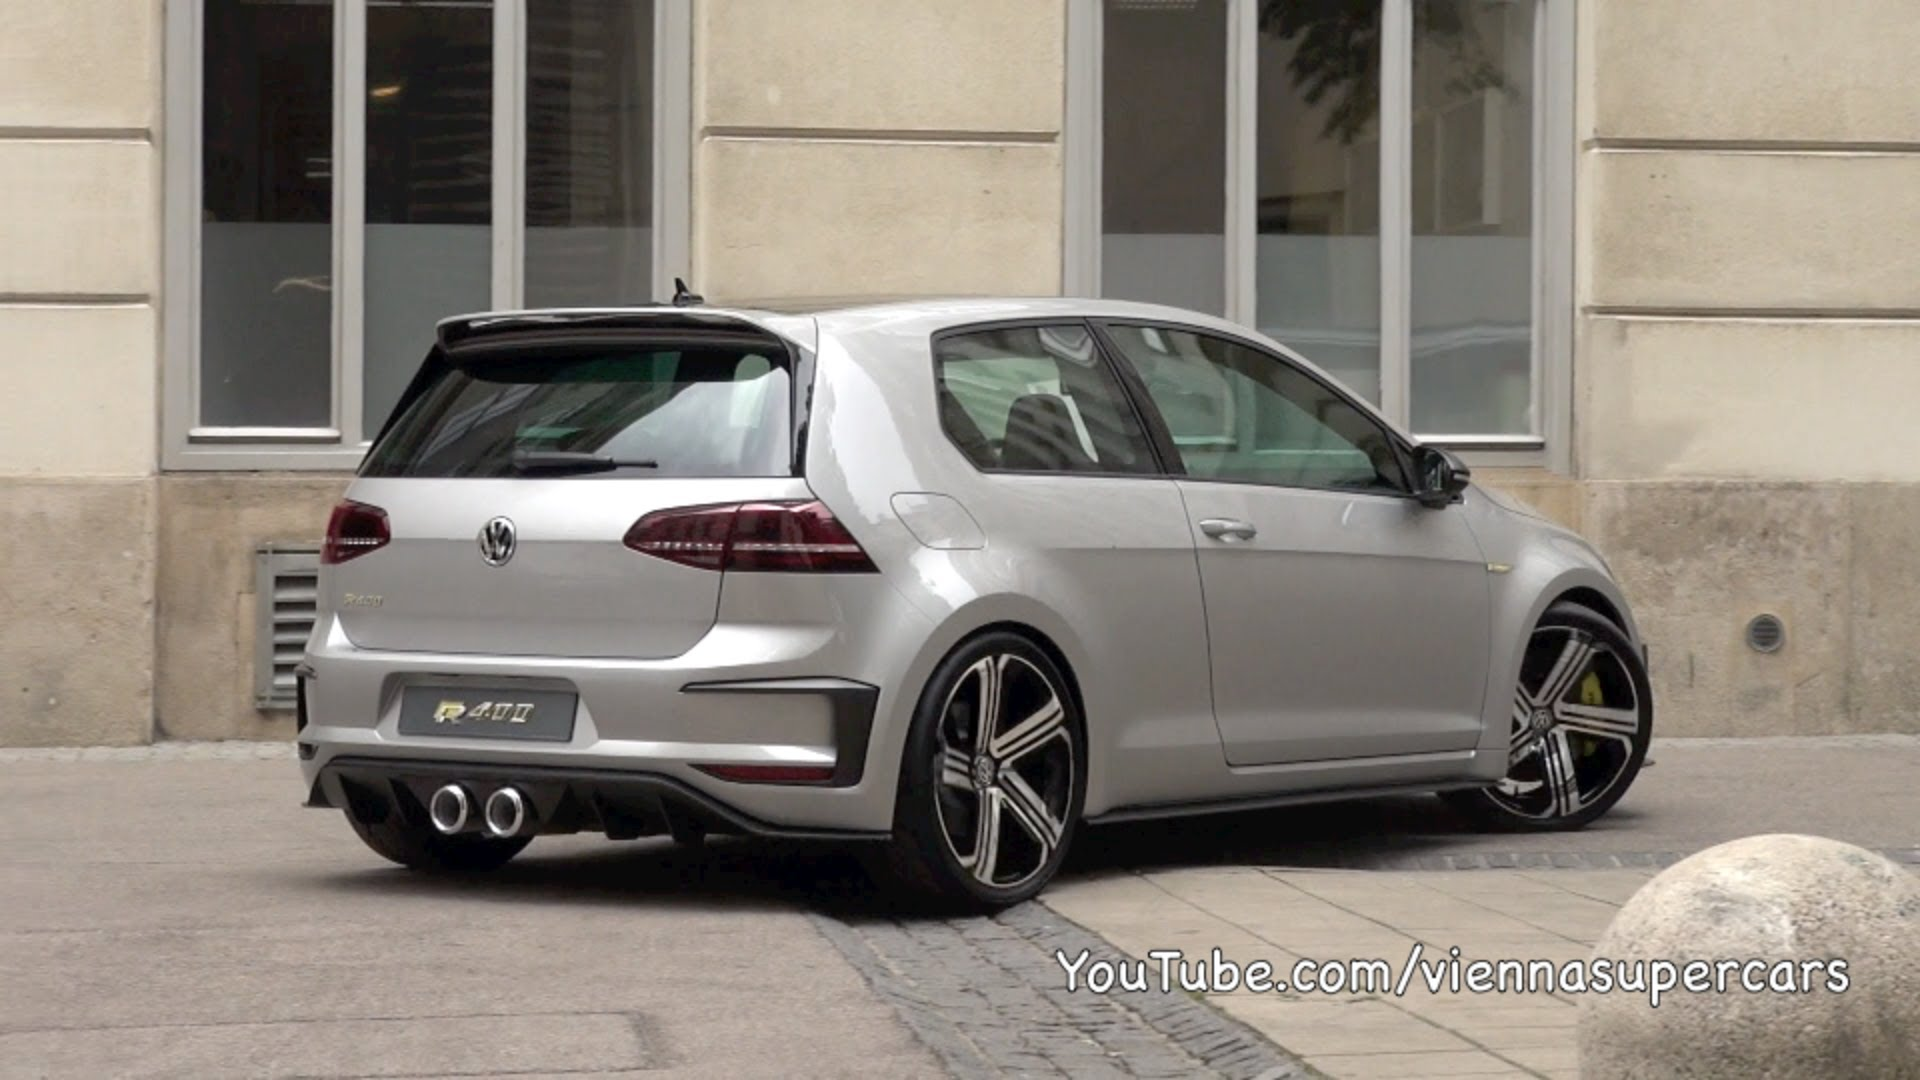 volkswagen cars news hear the golf r 400 exercise its lungs. Black Bedroom Furniture Sets. Home Design Ideas